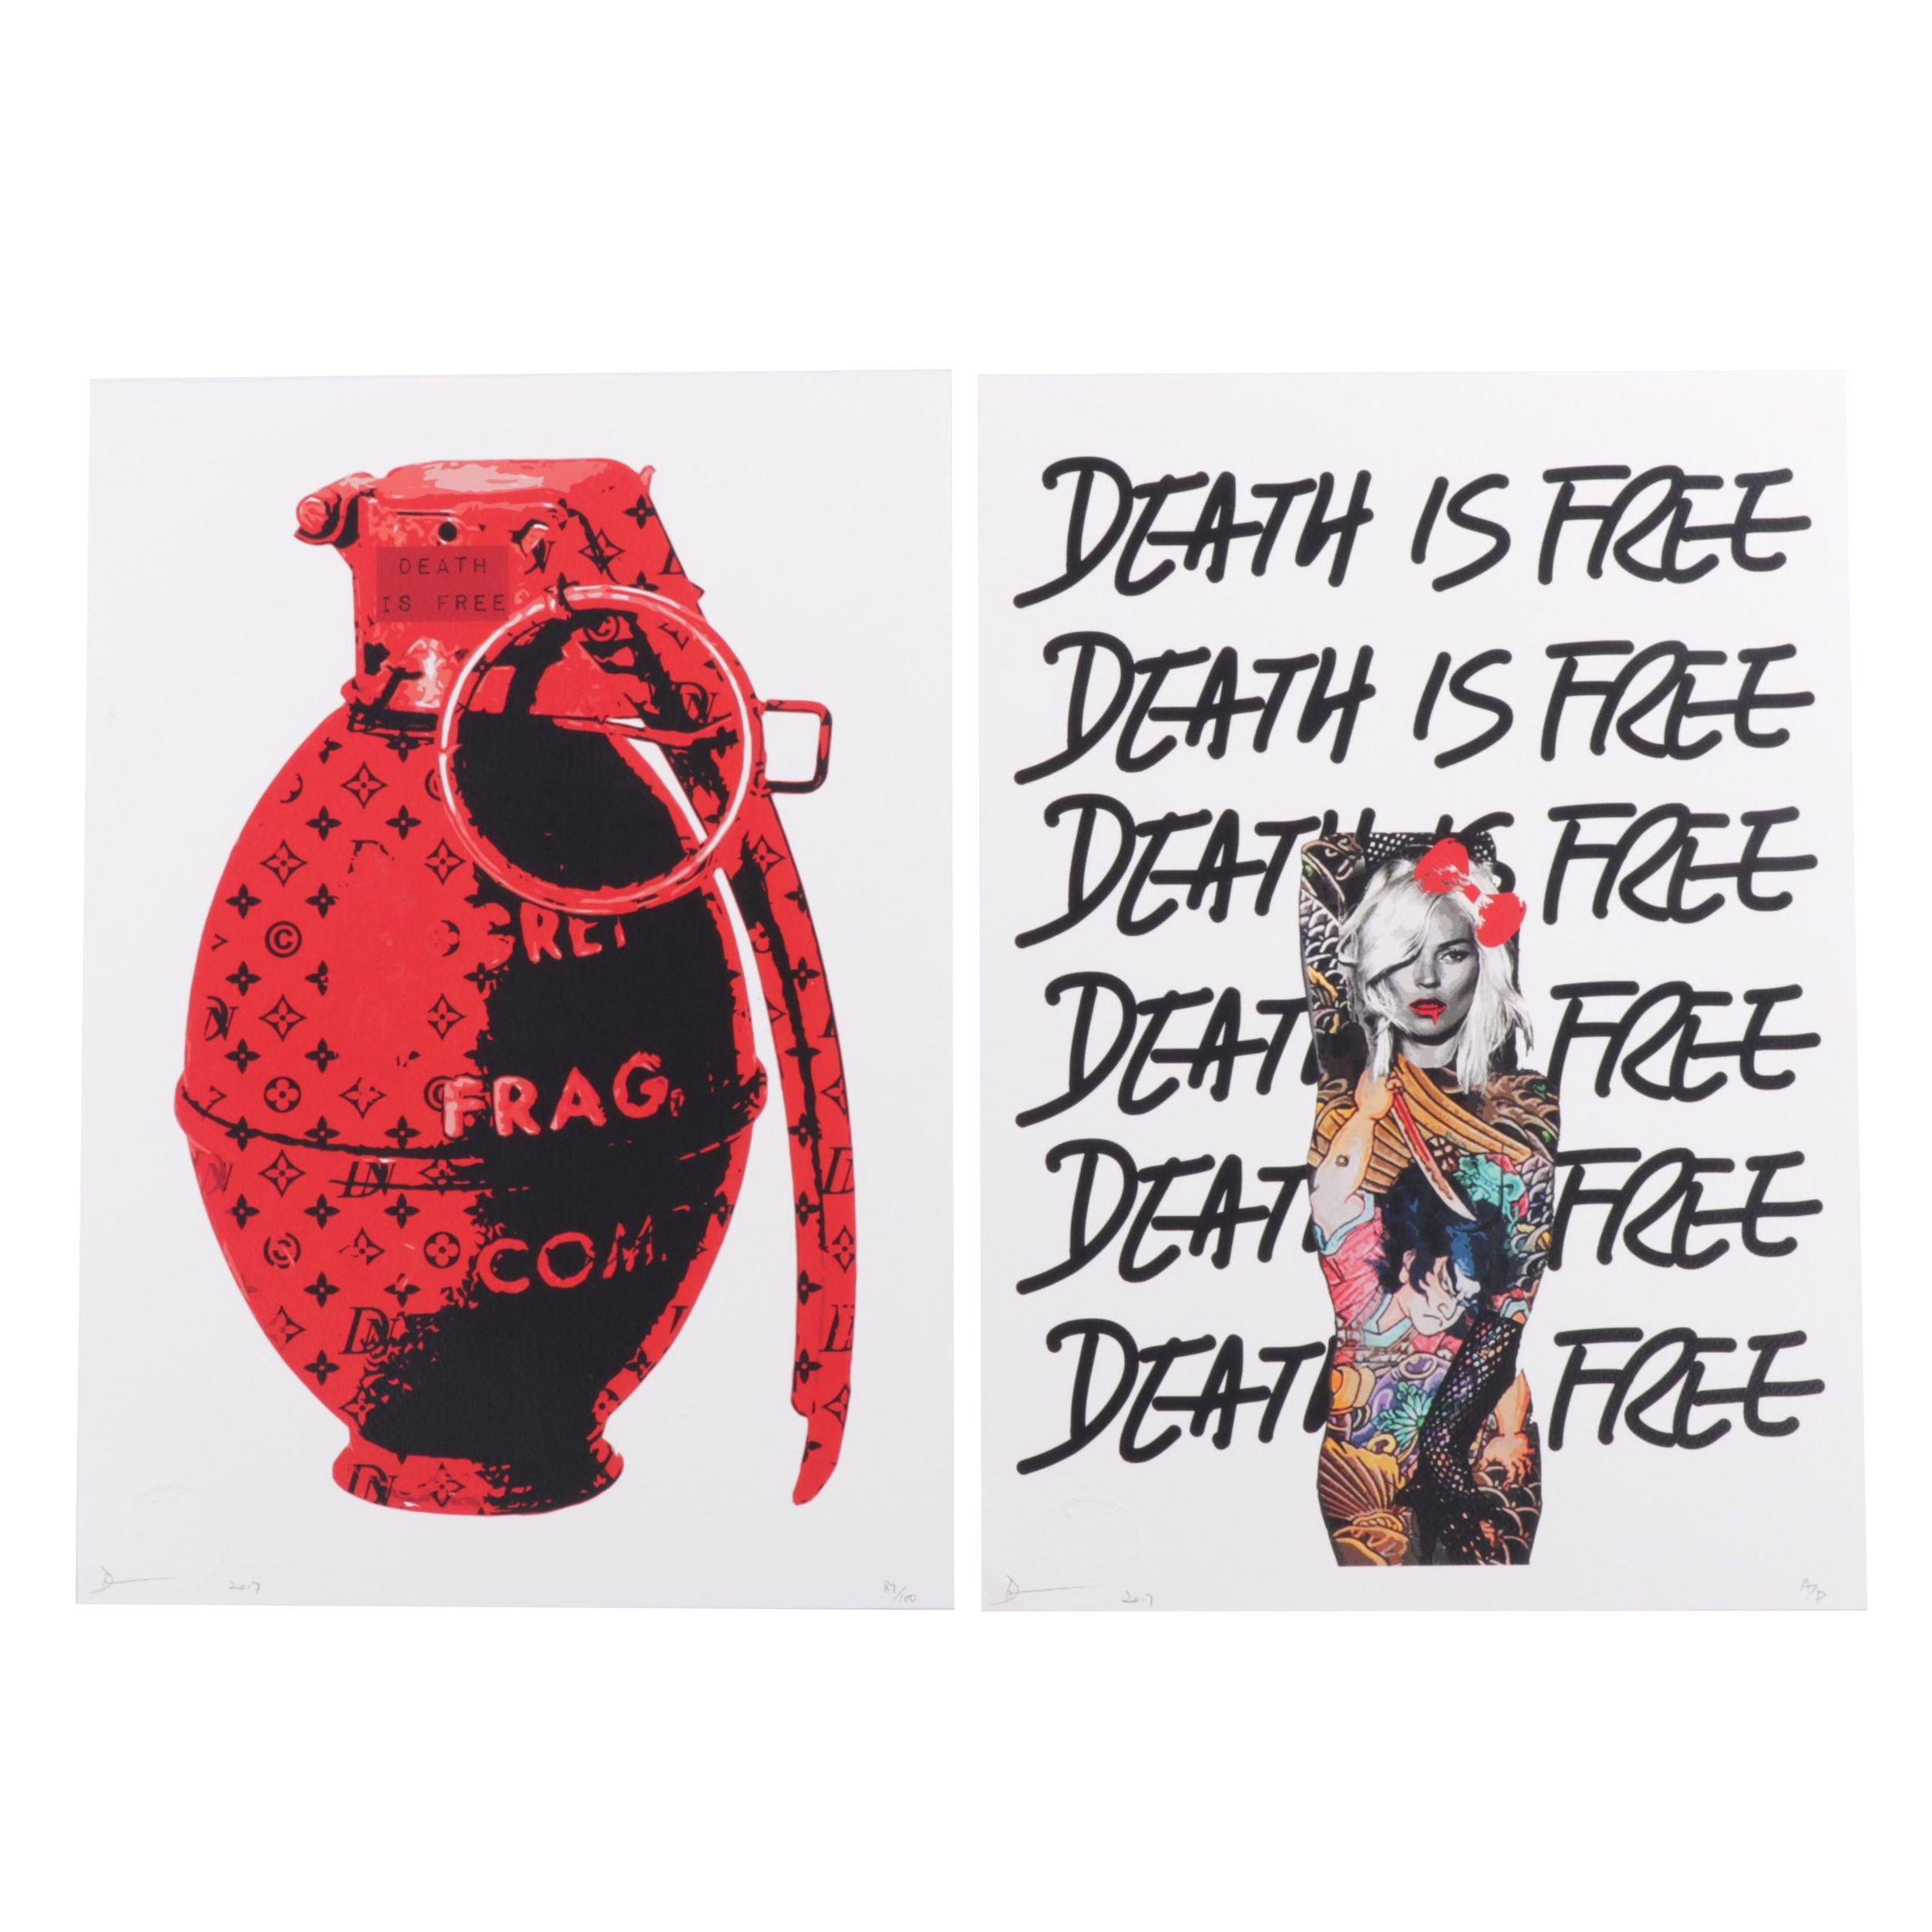 Death NYC Grenade and Death is Free Offset Prints